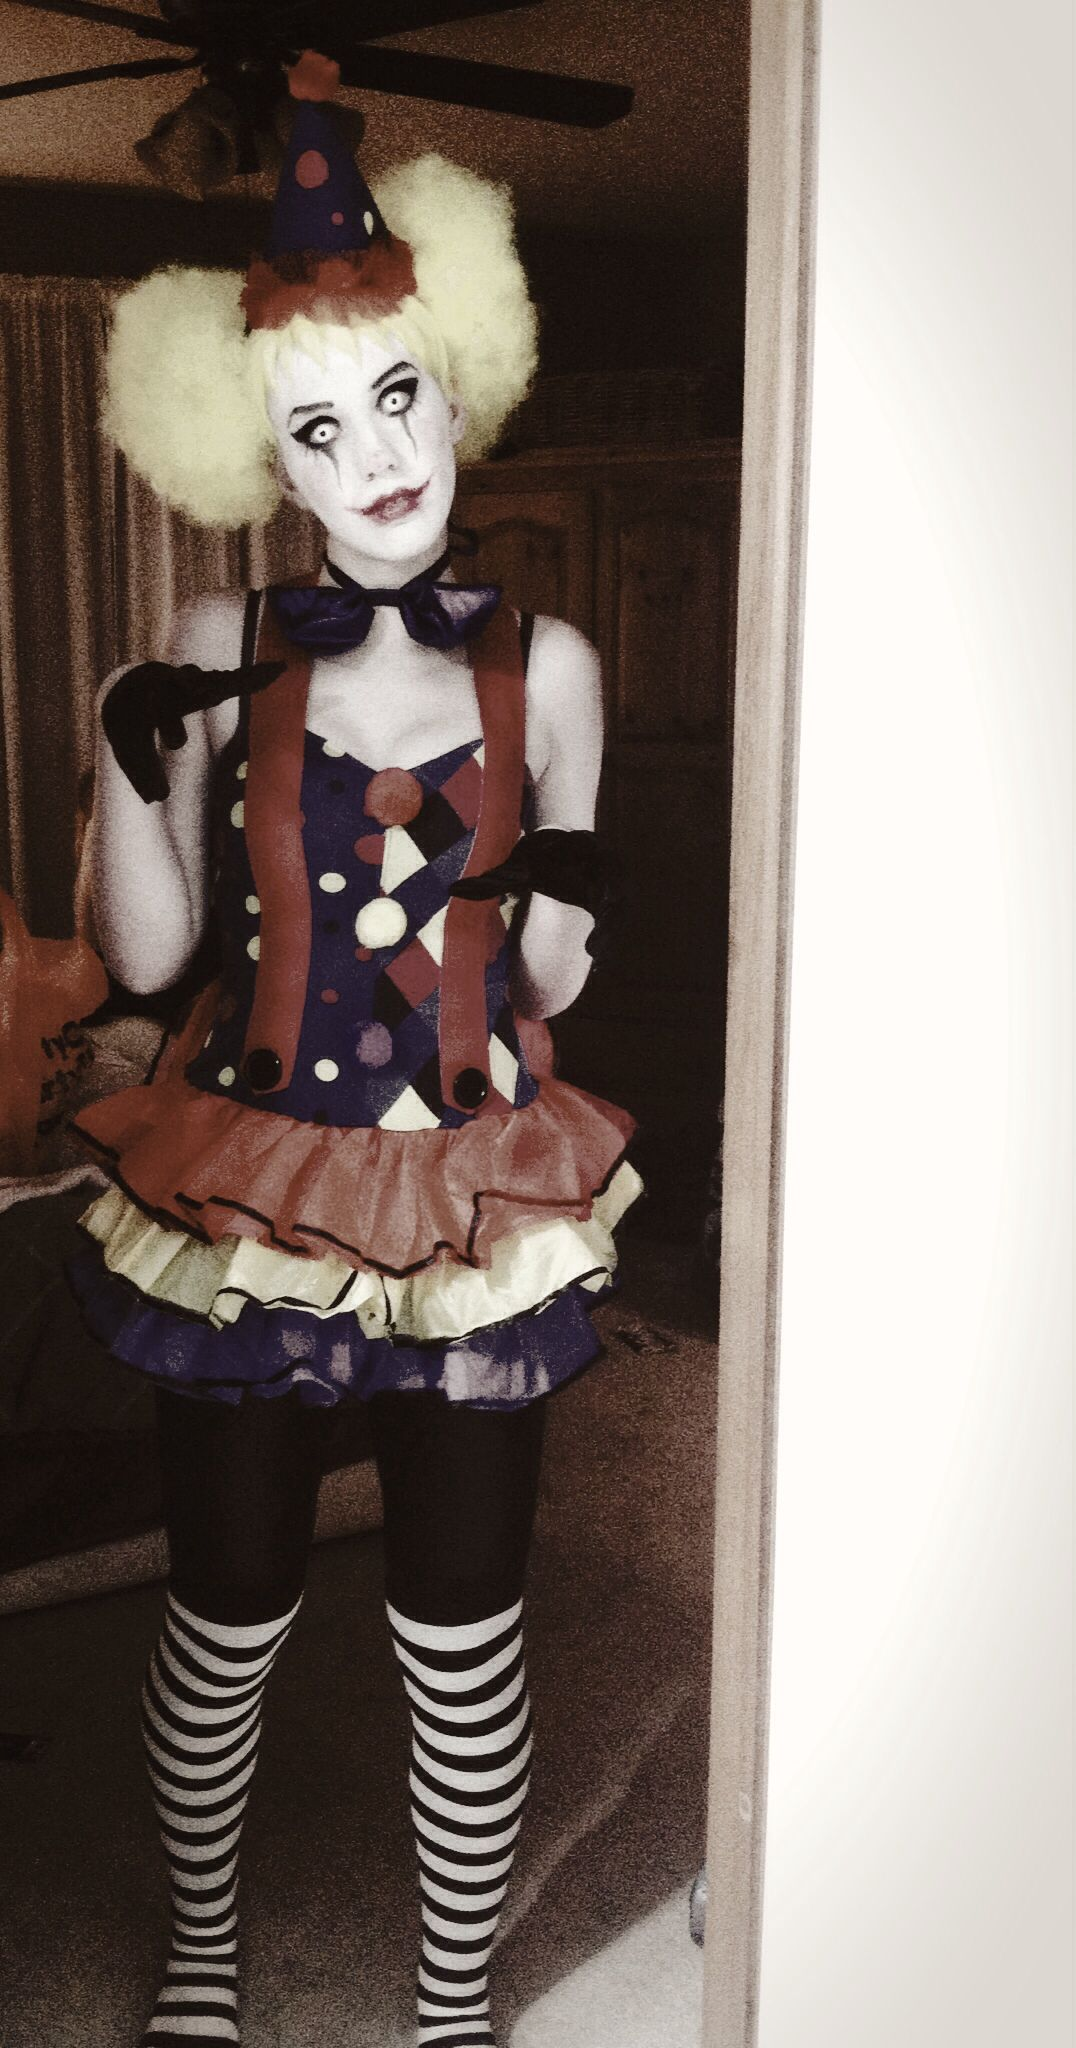 A Scary Clown Costume For Women. | More Halloween FUN! *COSTUMES ...